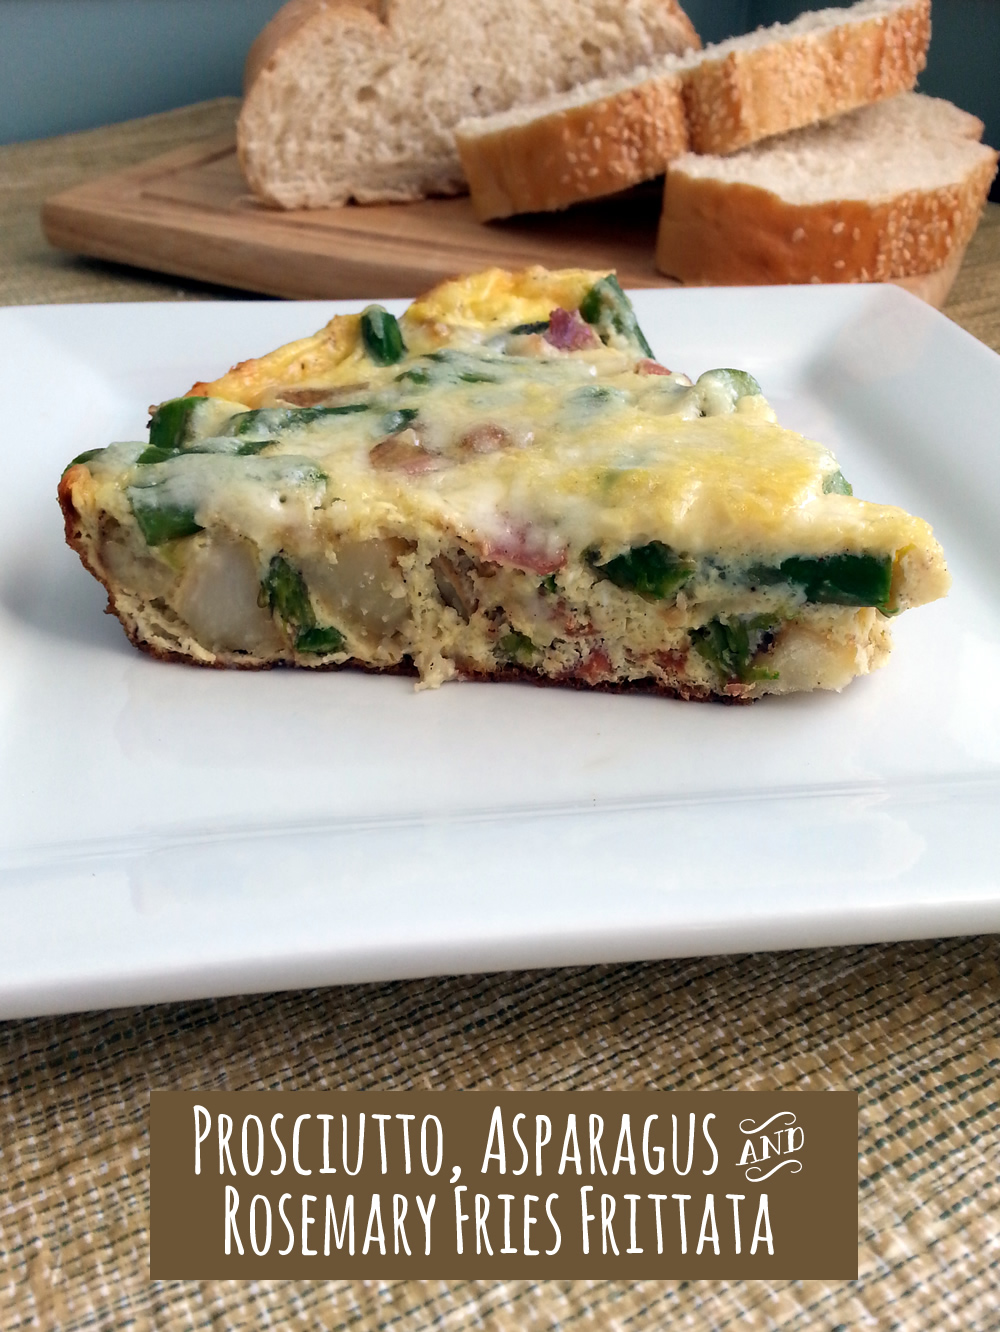 Brunch Recipe: Prosciutto, Asparagus and Rosemary Fries Frittata #SpringIntoFlavor #ad #cbias